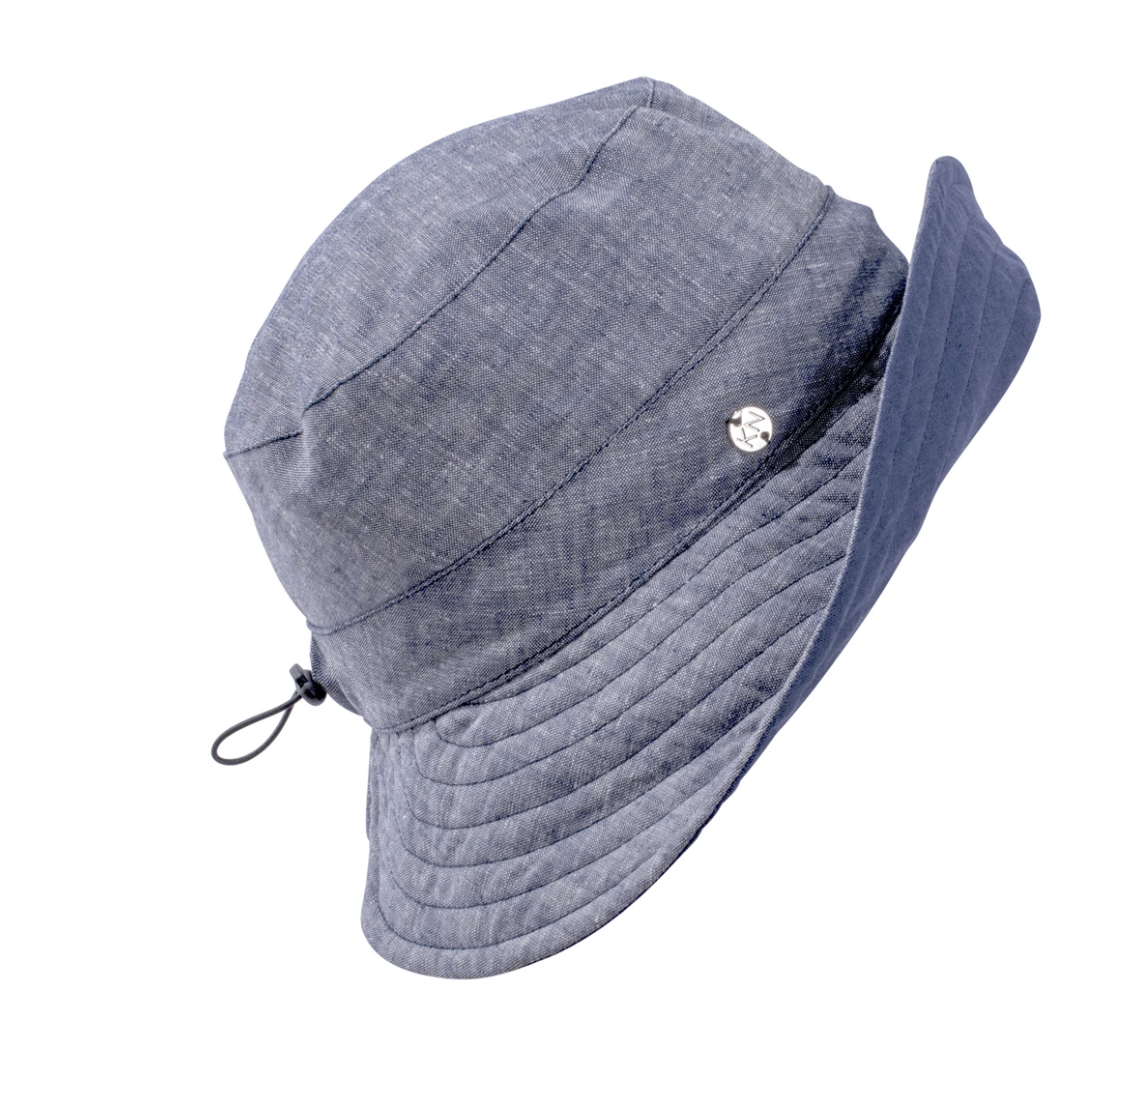 Kn Kati Niemi Mustikka Bucket Hat Dark Blue